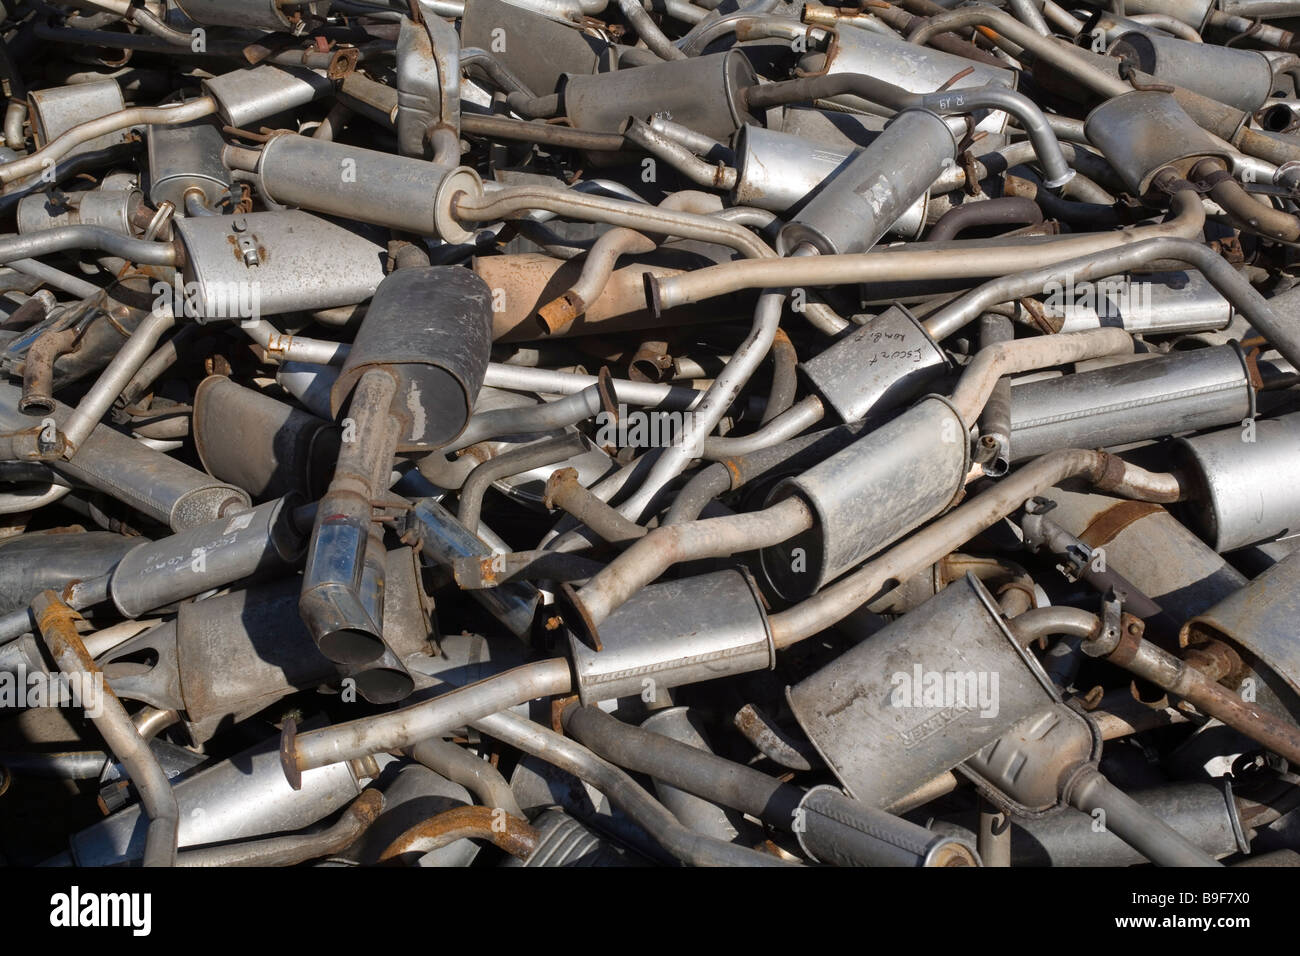 Old exhaust pipes on a scrap yard - Stock Image